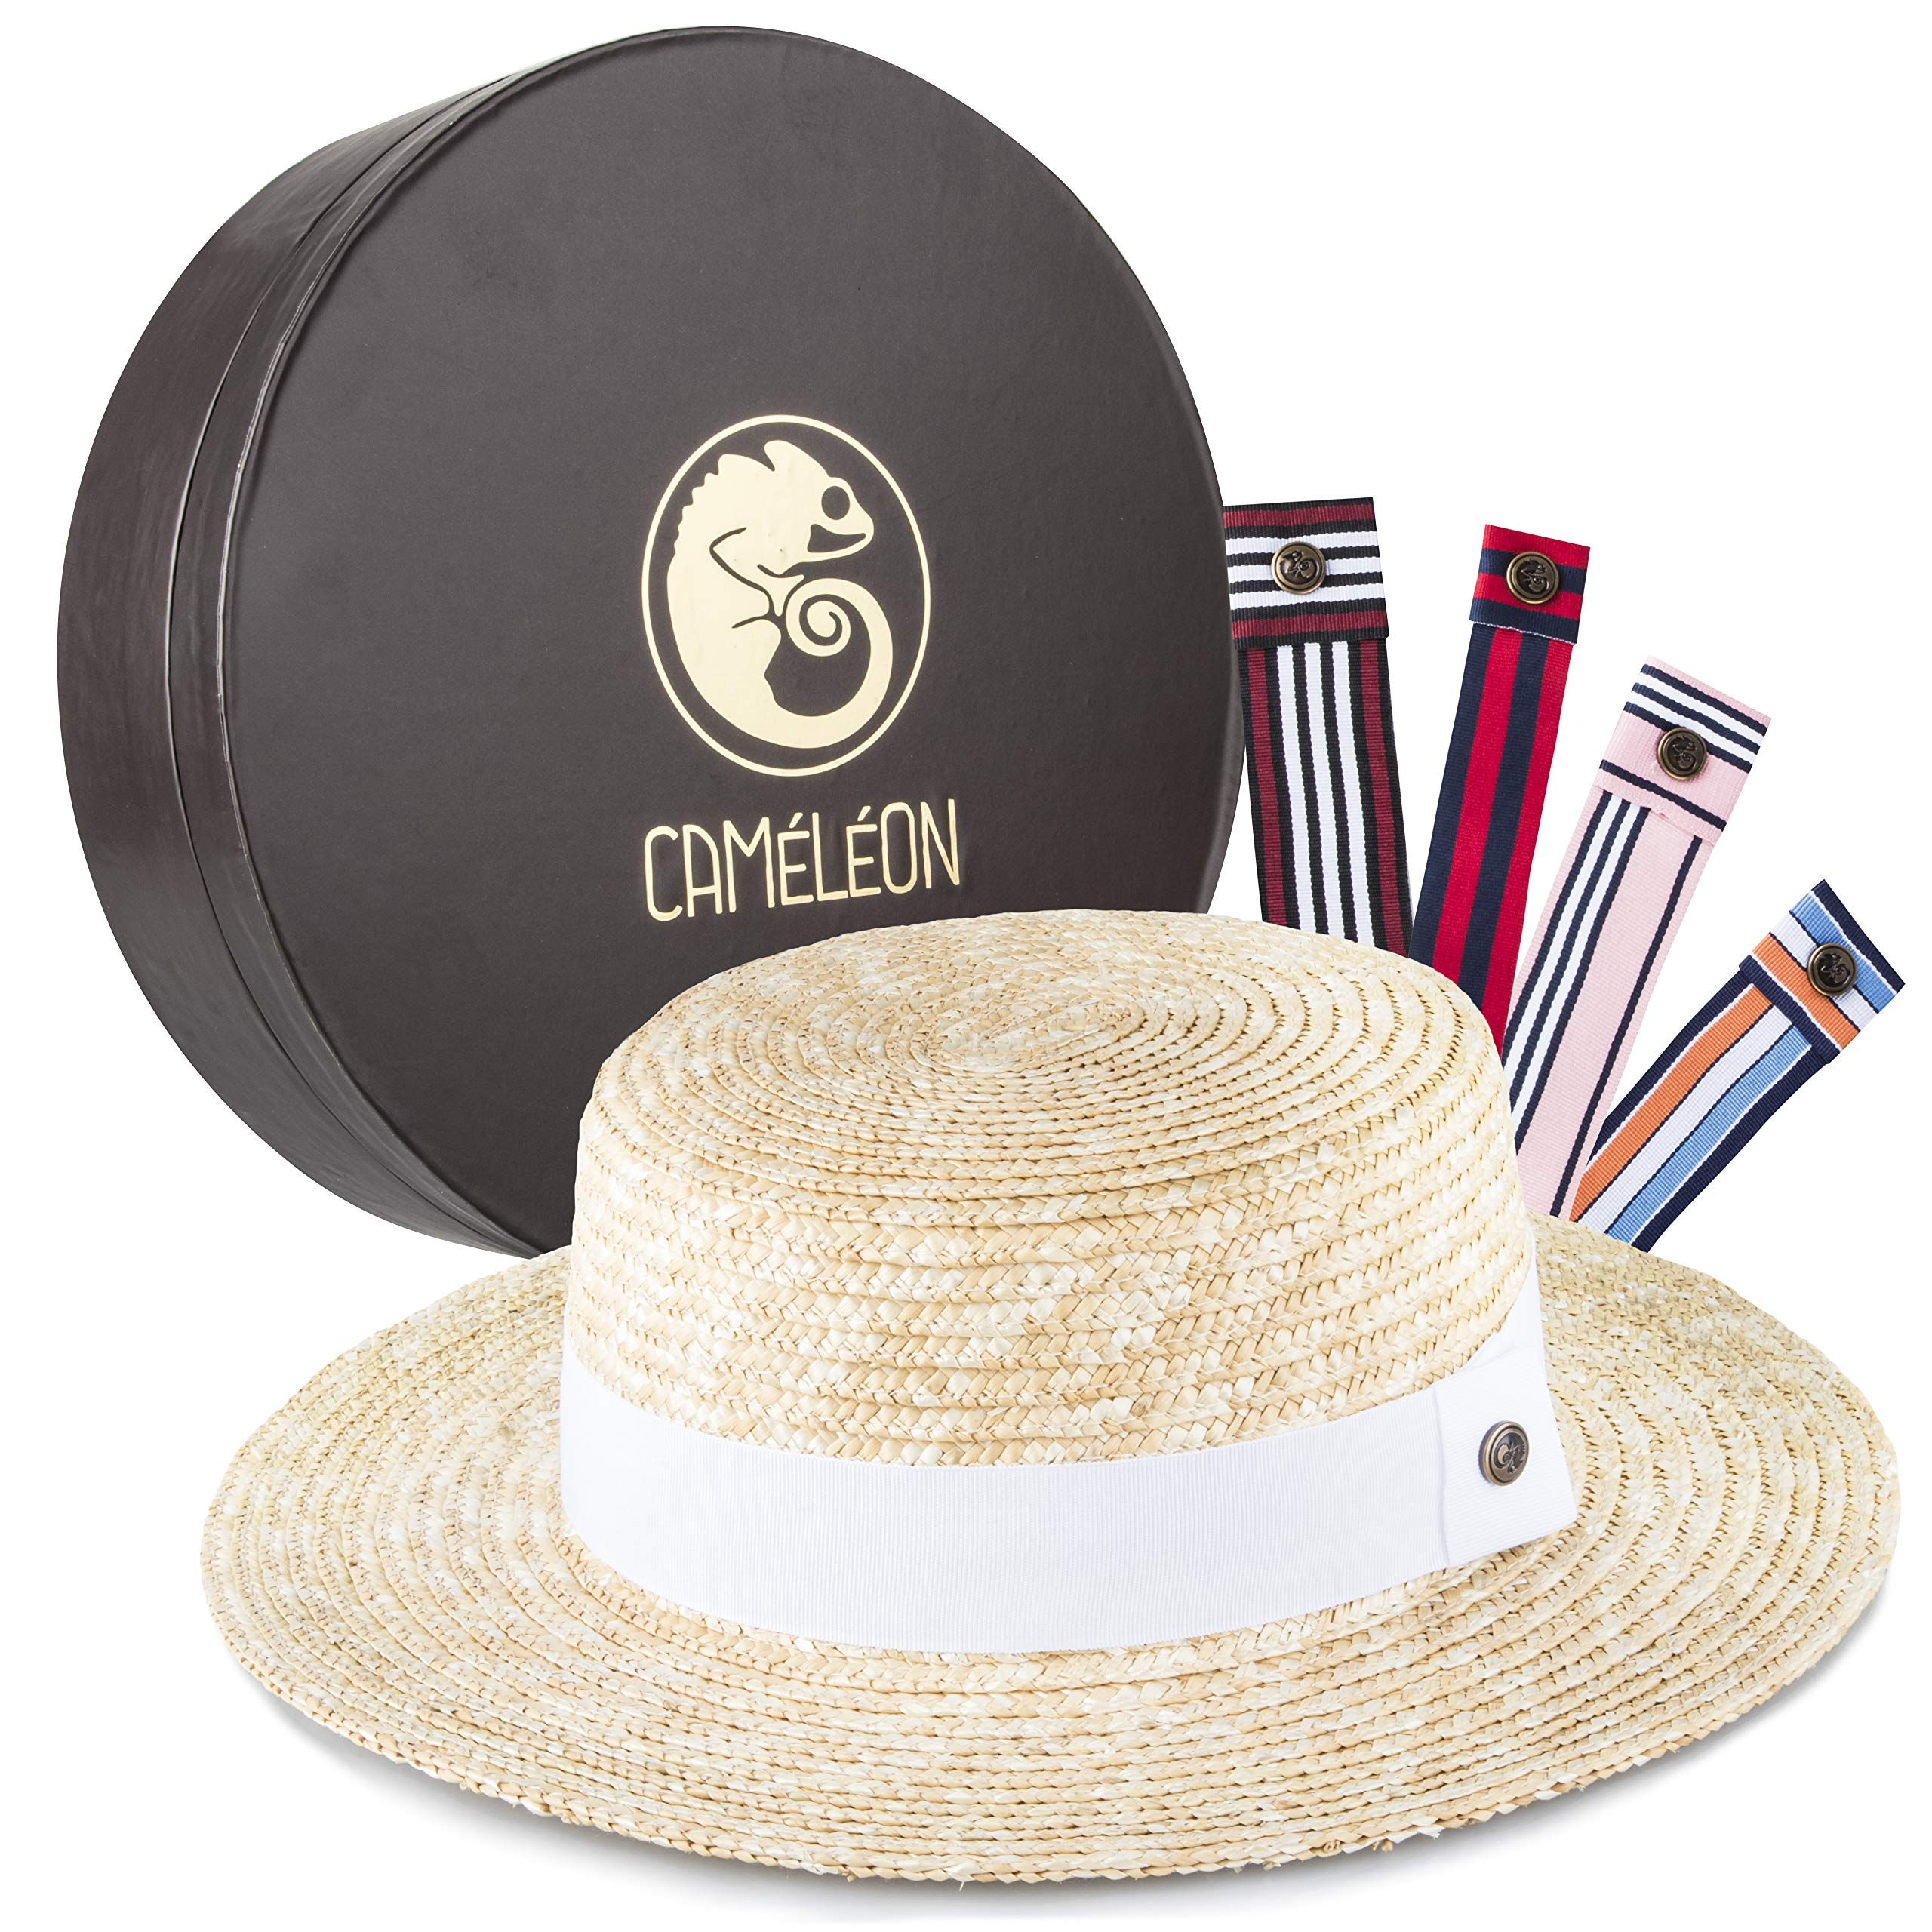 CAMÉLÉON (Chameleon) Womens Straw Hat: Packable Braided Wide Brim Straw Sunhat with 5 Interchangeable Colored Bands - Natural  Straw Flat Top Fedora/Boater/Panama Beach Summer Hats for Women